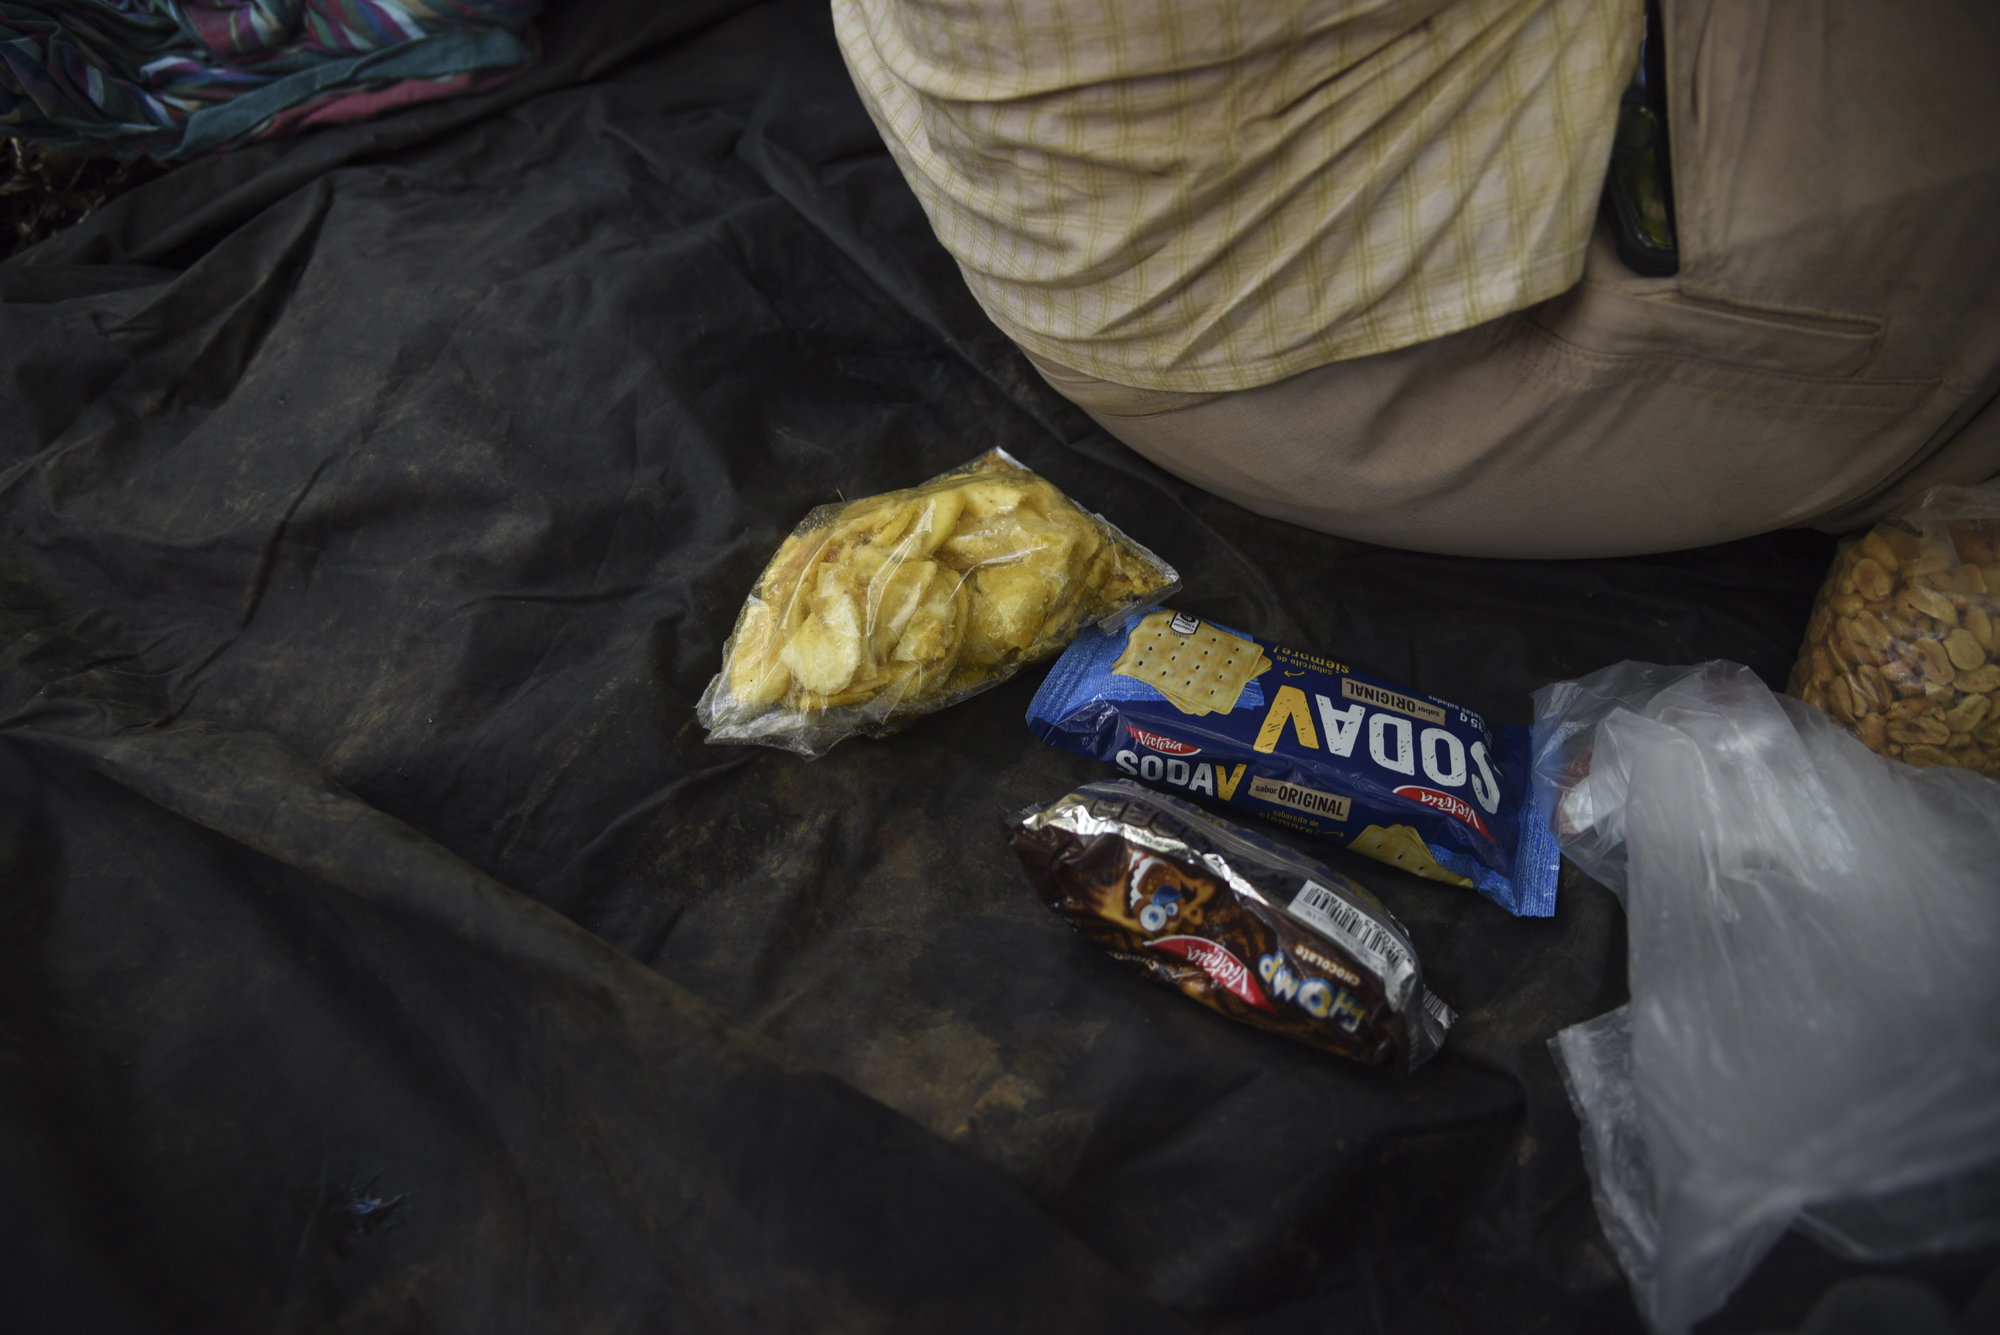 Chiflas (plantain chips), crackers, cookies and peanuts and other snacks help refuel the group to continue the search.